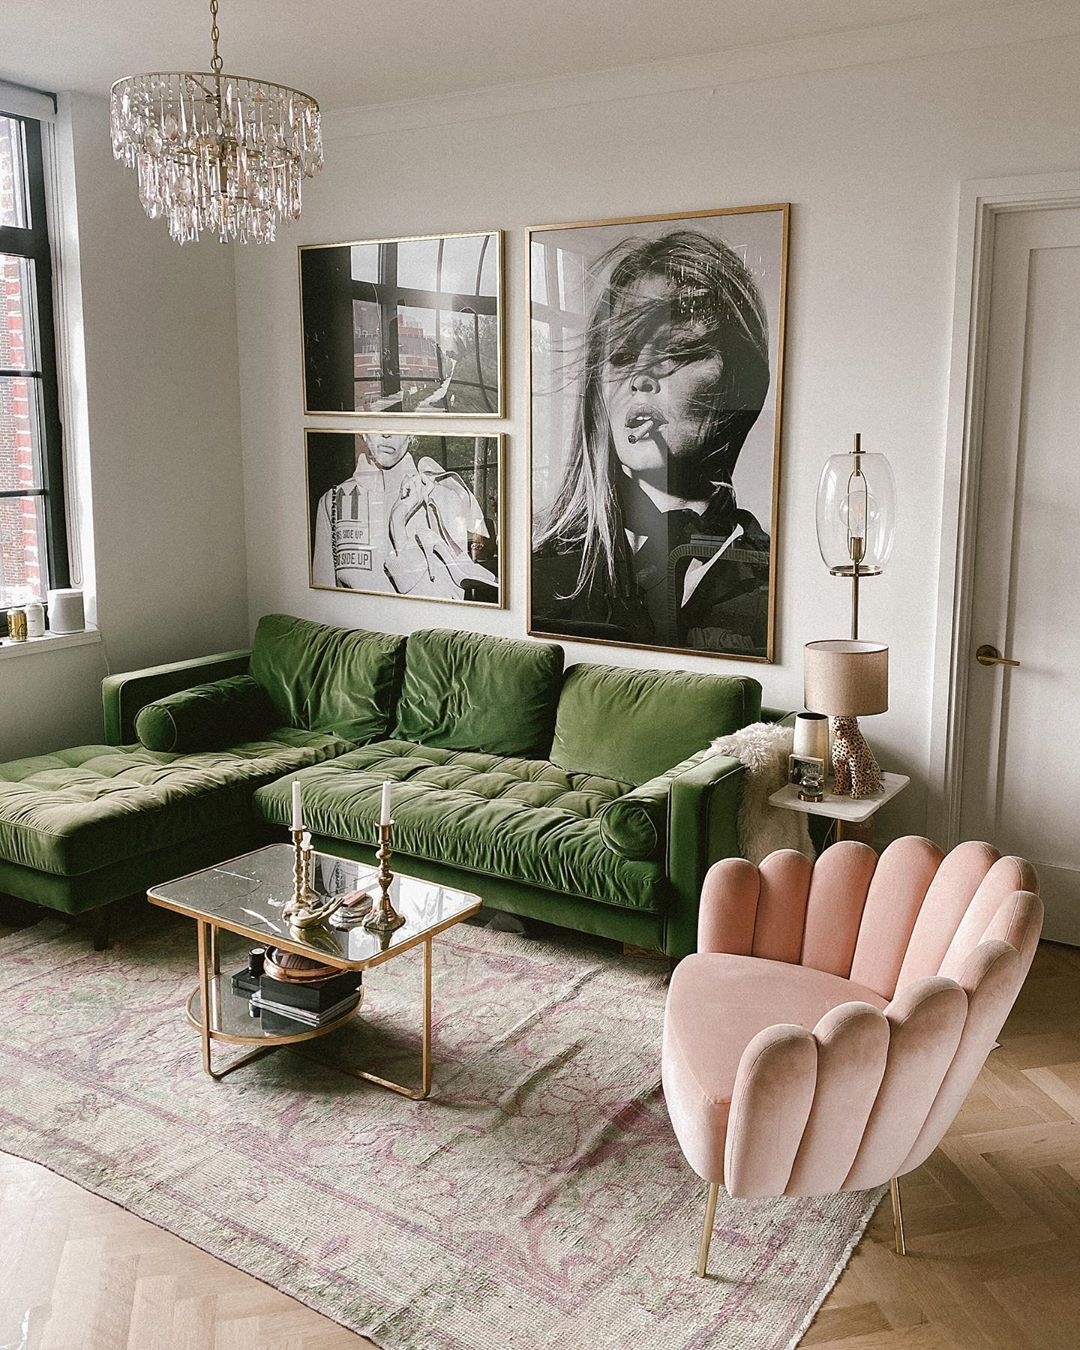 Photo of Where To Splurge And Save When Decorating, According To An Interior Designer